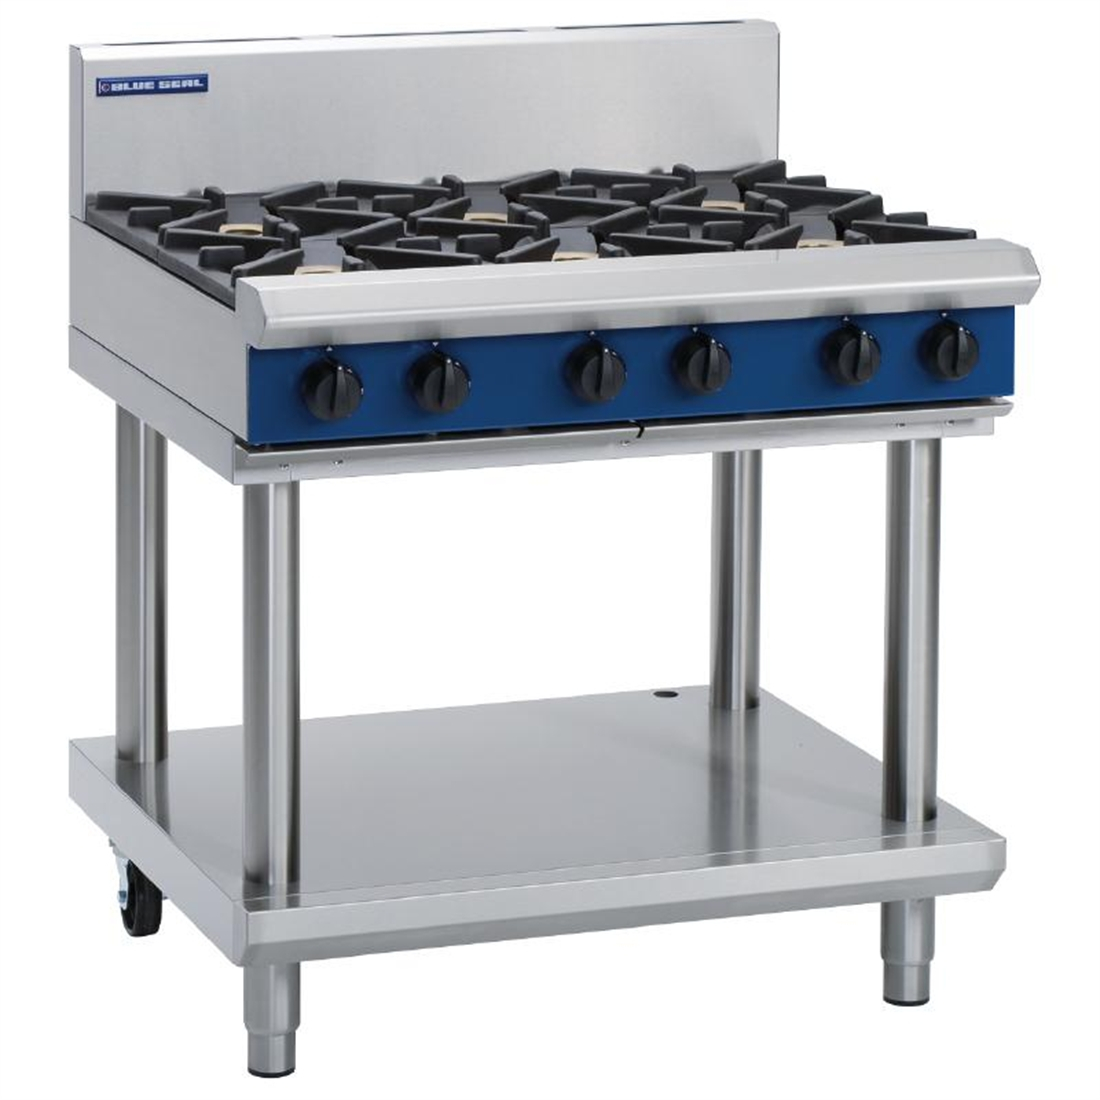 Blue Seal Evolution Cooktop 6 Open Burners LPG on Stand 900mm G516D-LS/L